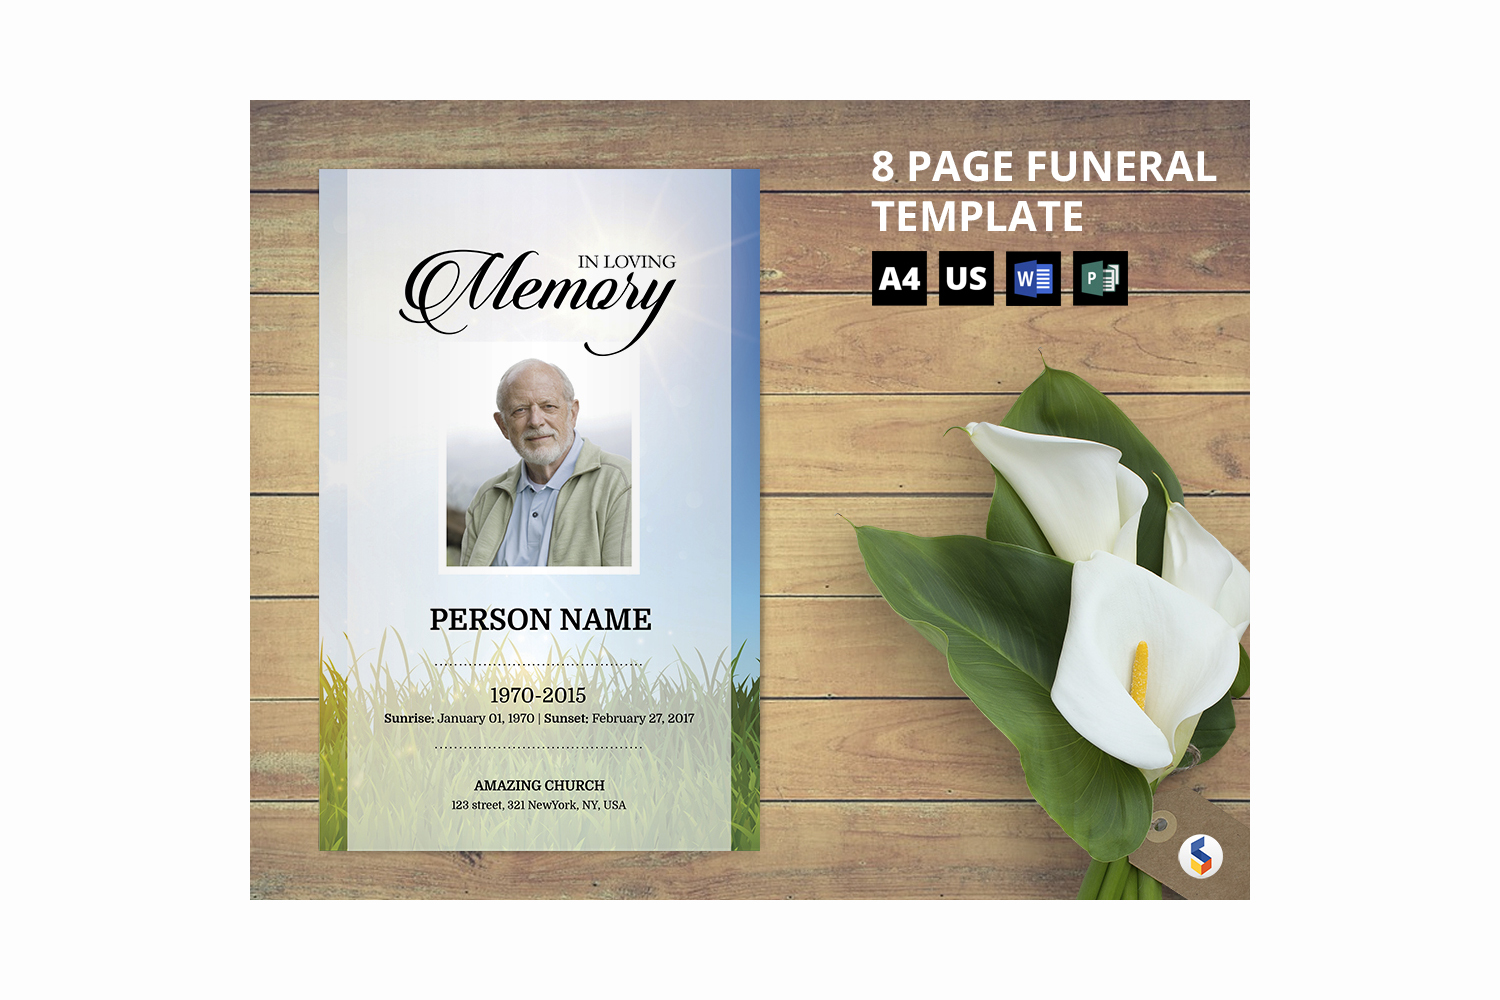 Sky and green Funeral Program Template example image 1